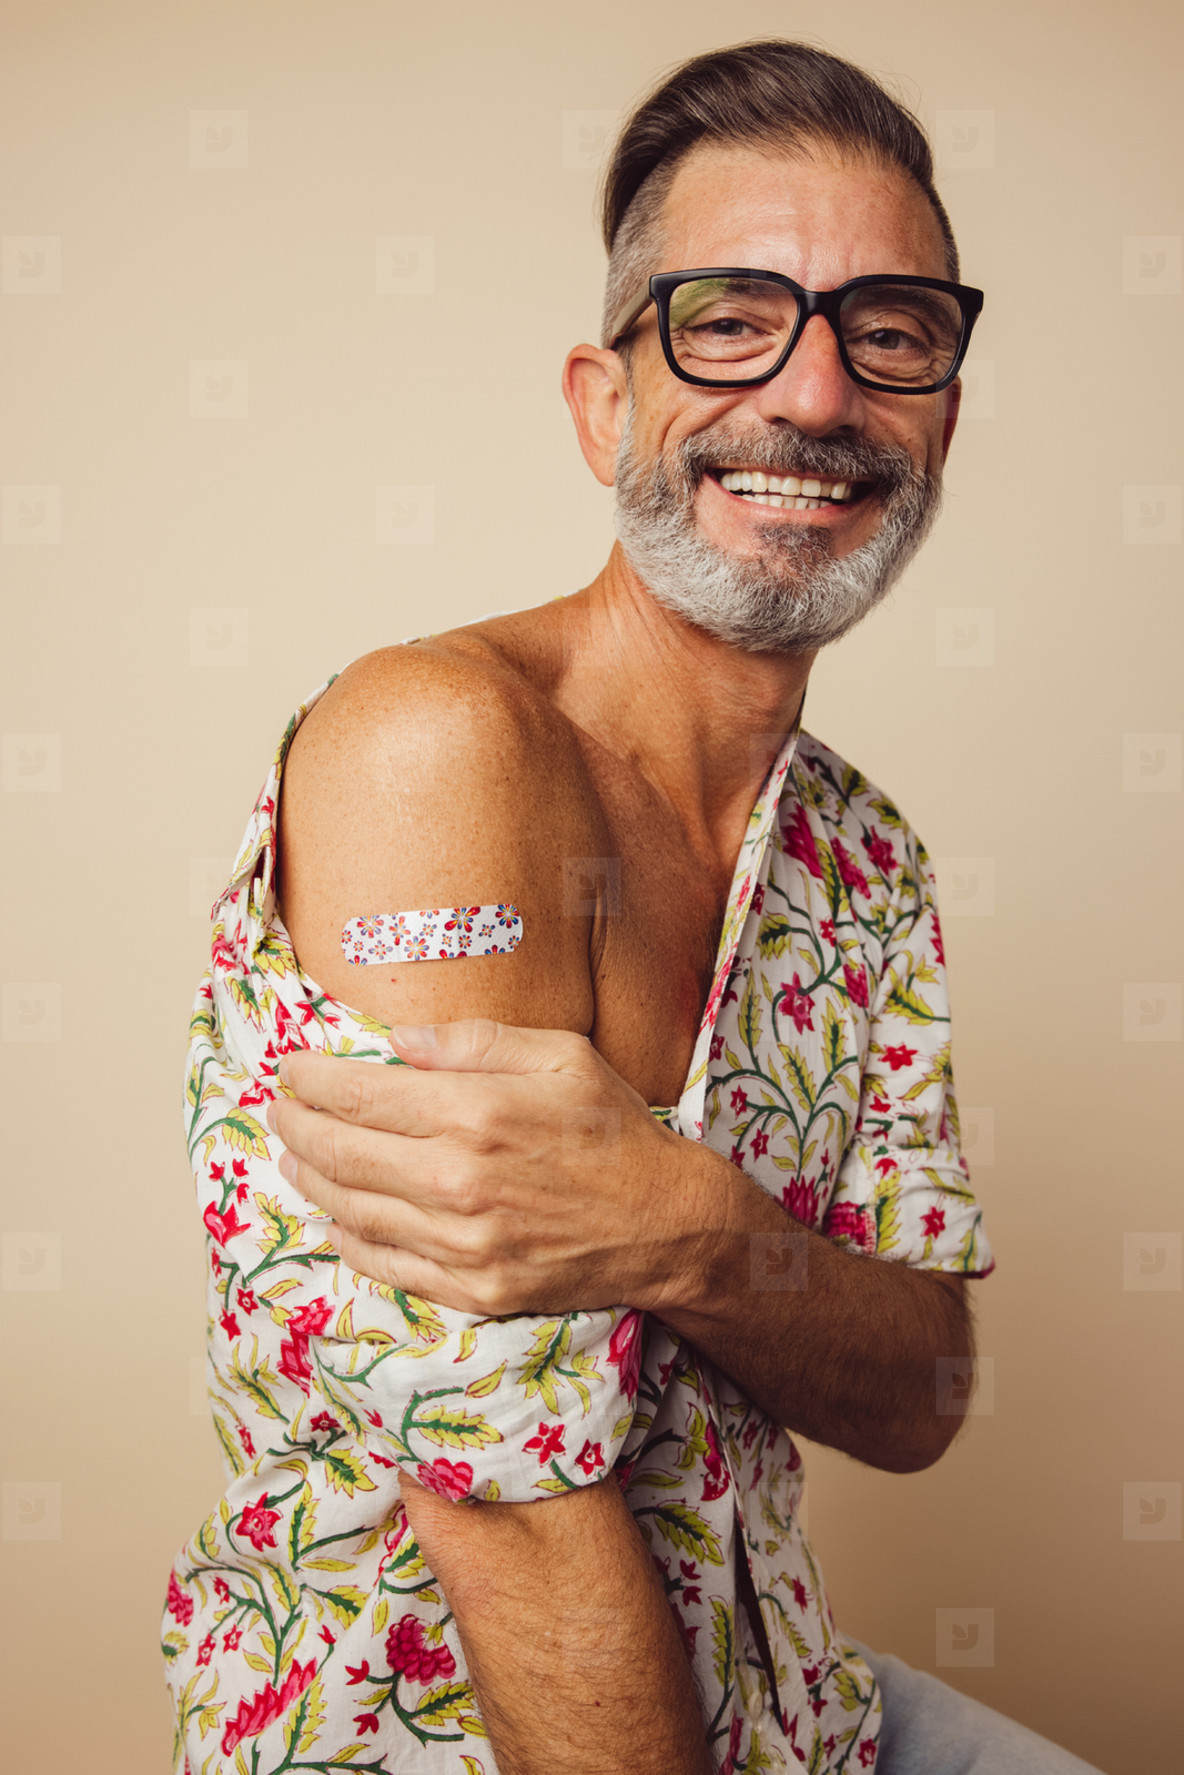 Mature man smiling after getting vaccine